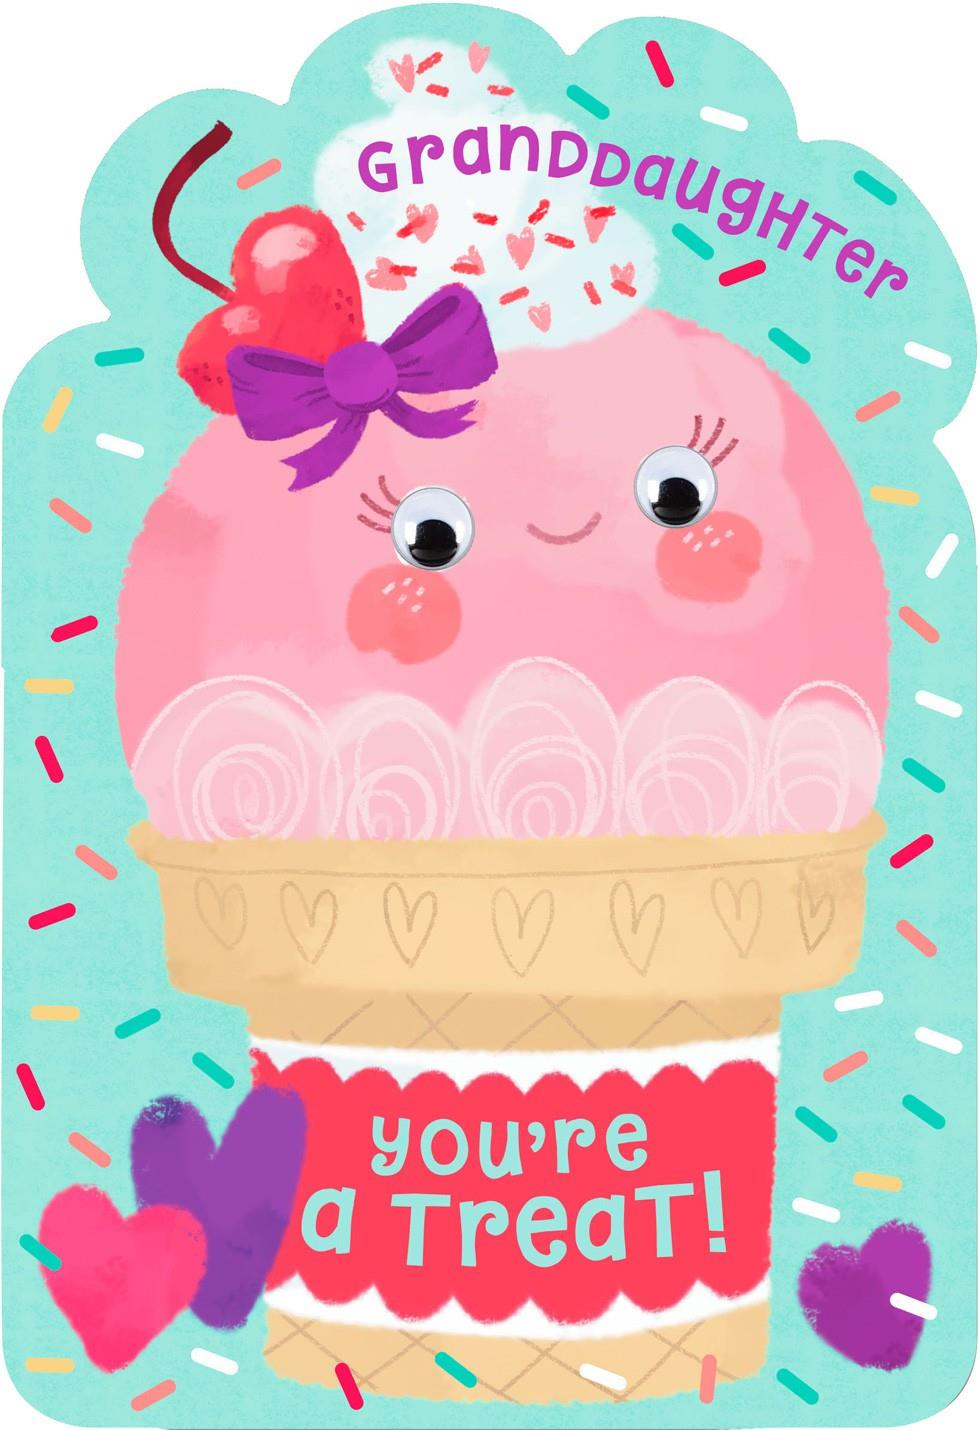 Ice Cream Cone Youre a Treat Valentines Day Card for – Granddaughter Valentine Card